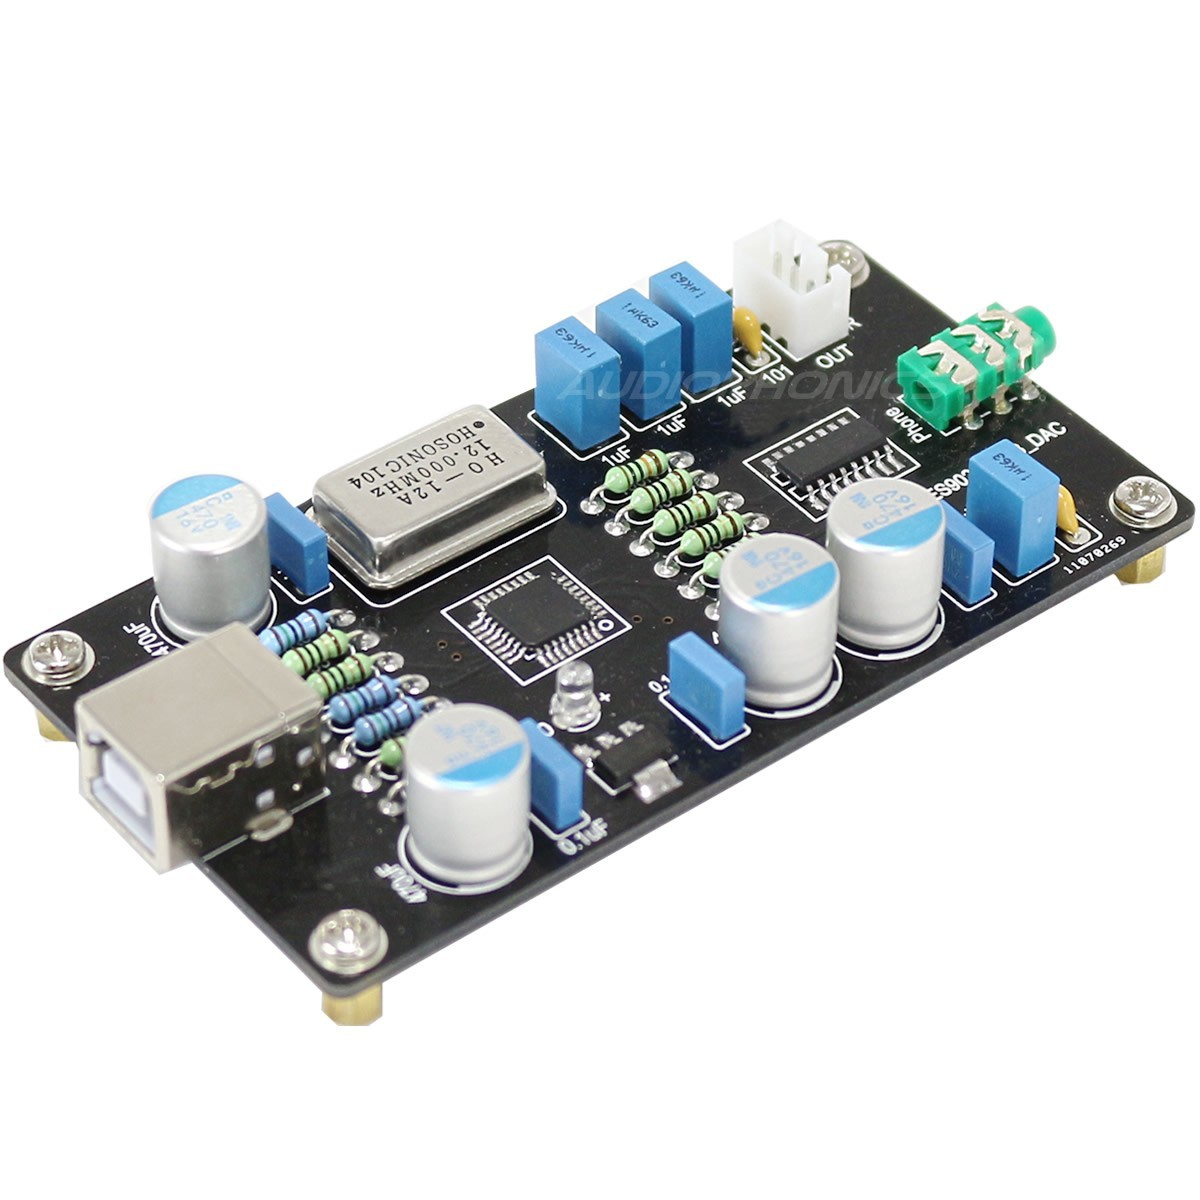 DIY USB DAC Board ES9023 PCM2706 16bit / 44khz